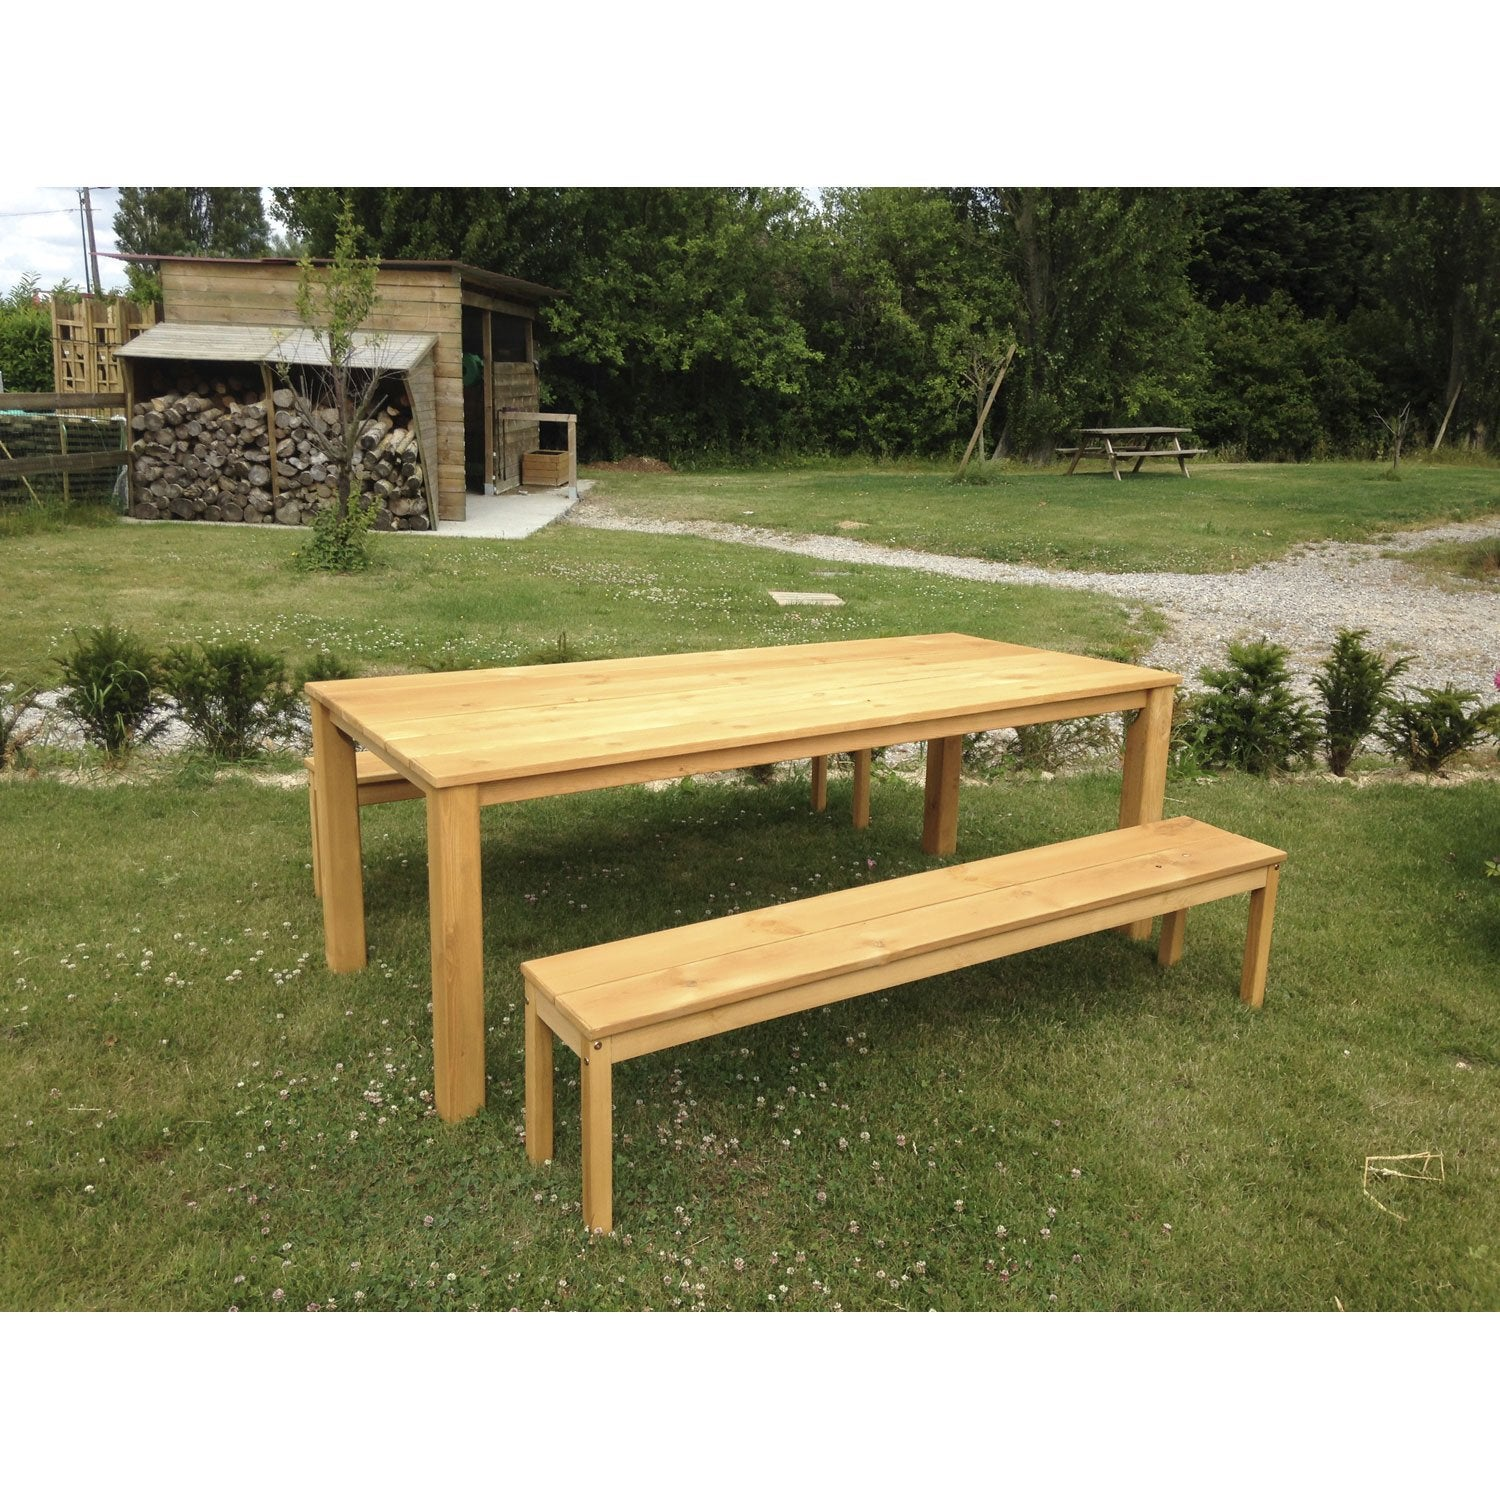 salon de jardin set ferme bois ch 234 ne vieilli 1 table 2 bancs leroy merlin